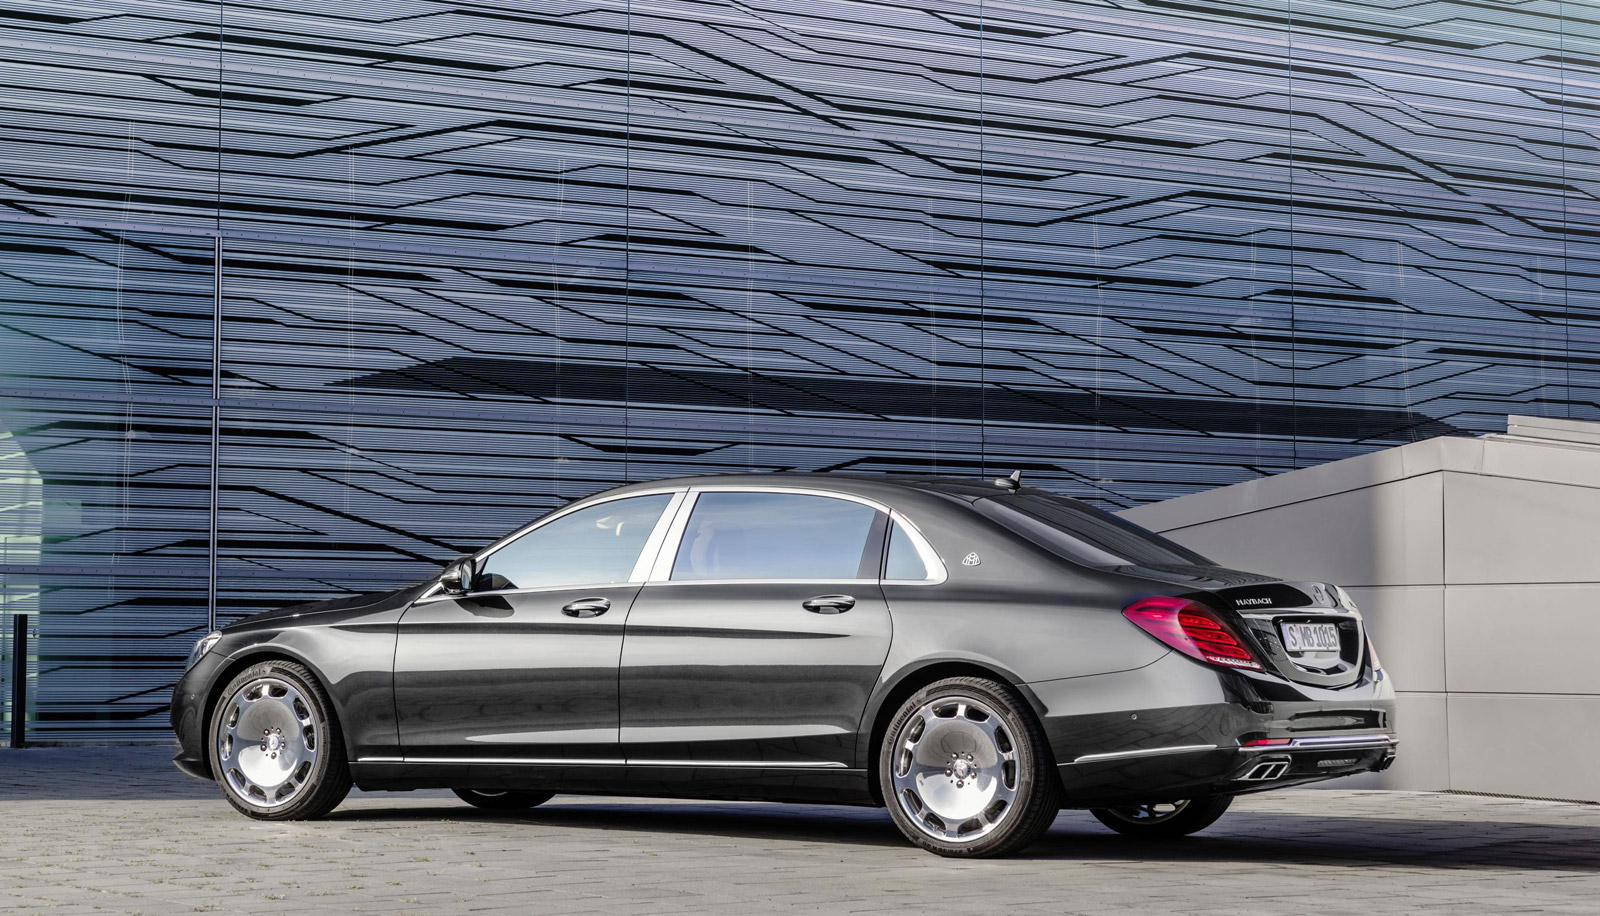 Mercedes-Maybach S600 Driven, Lotus F1 Car Revealed ...